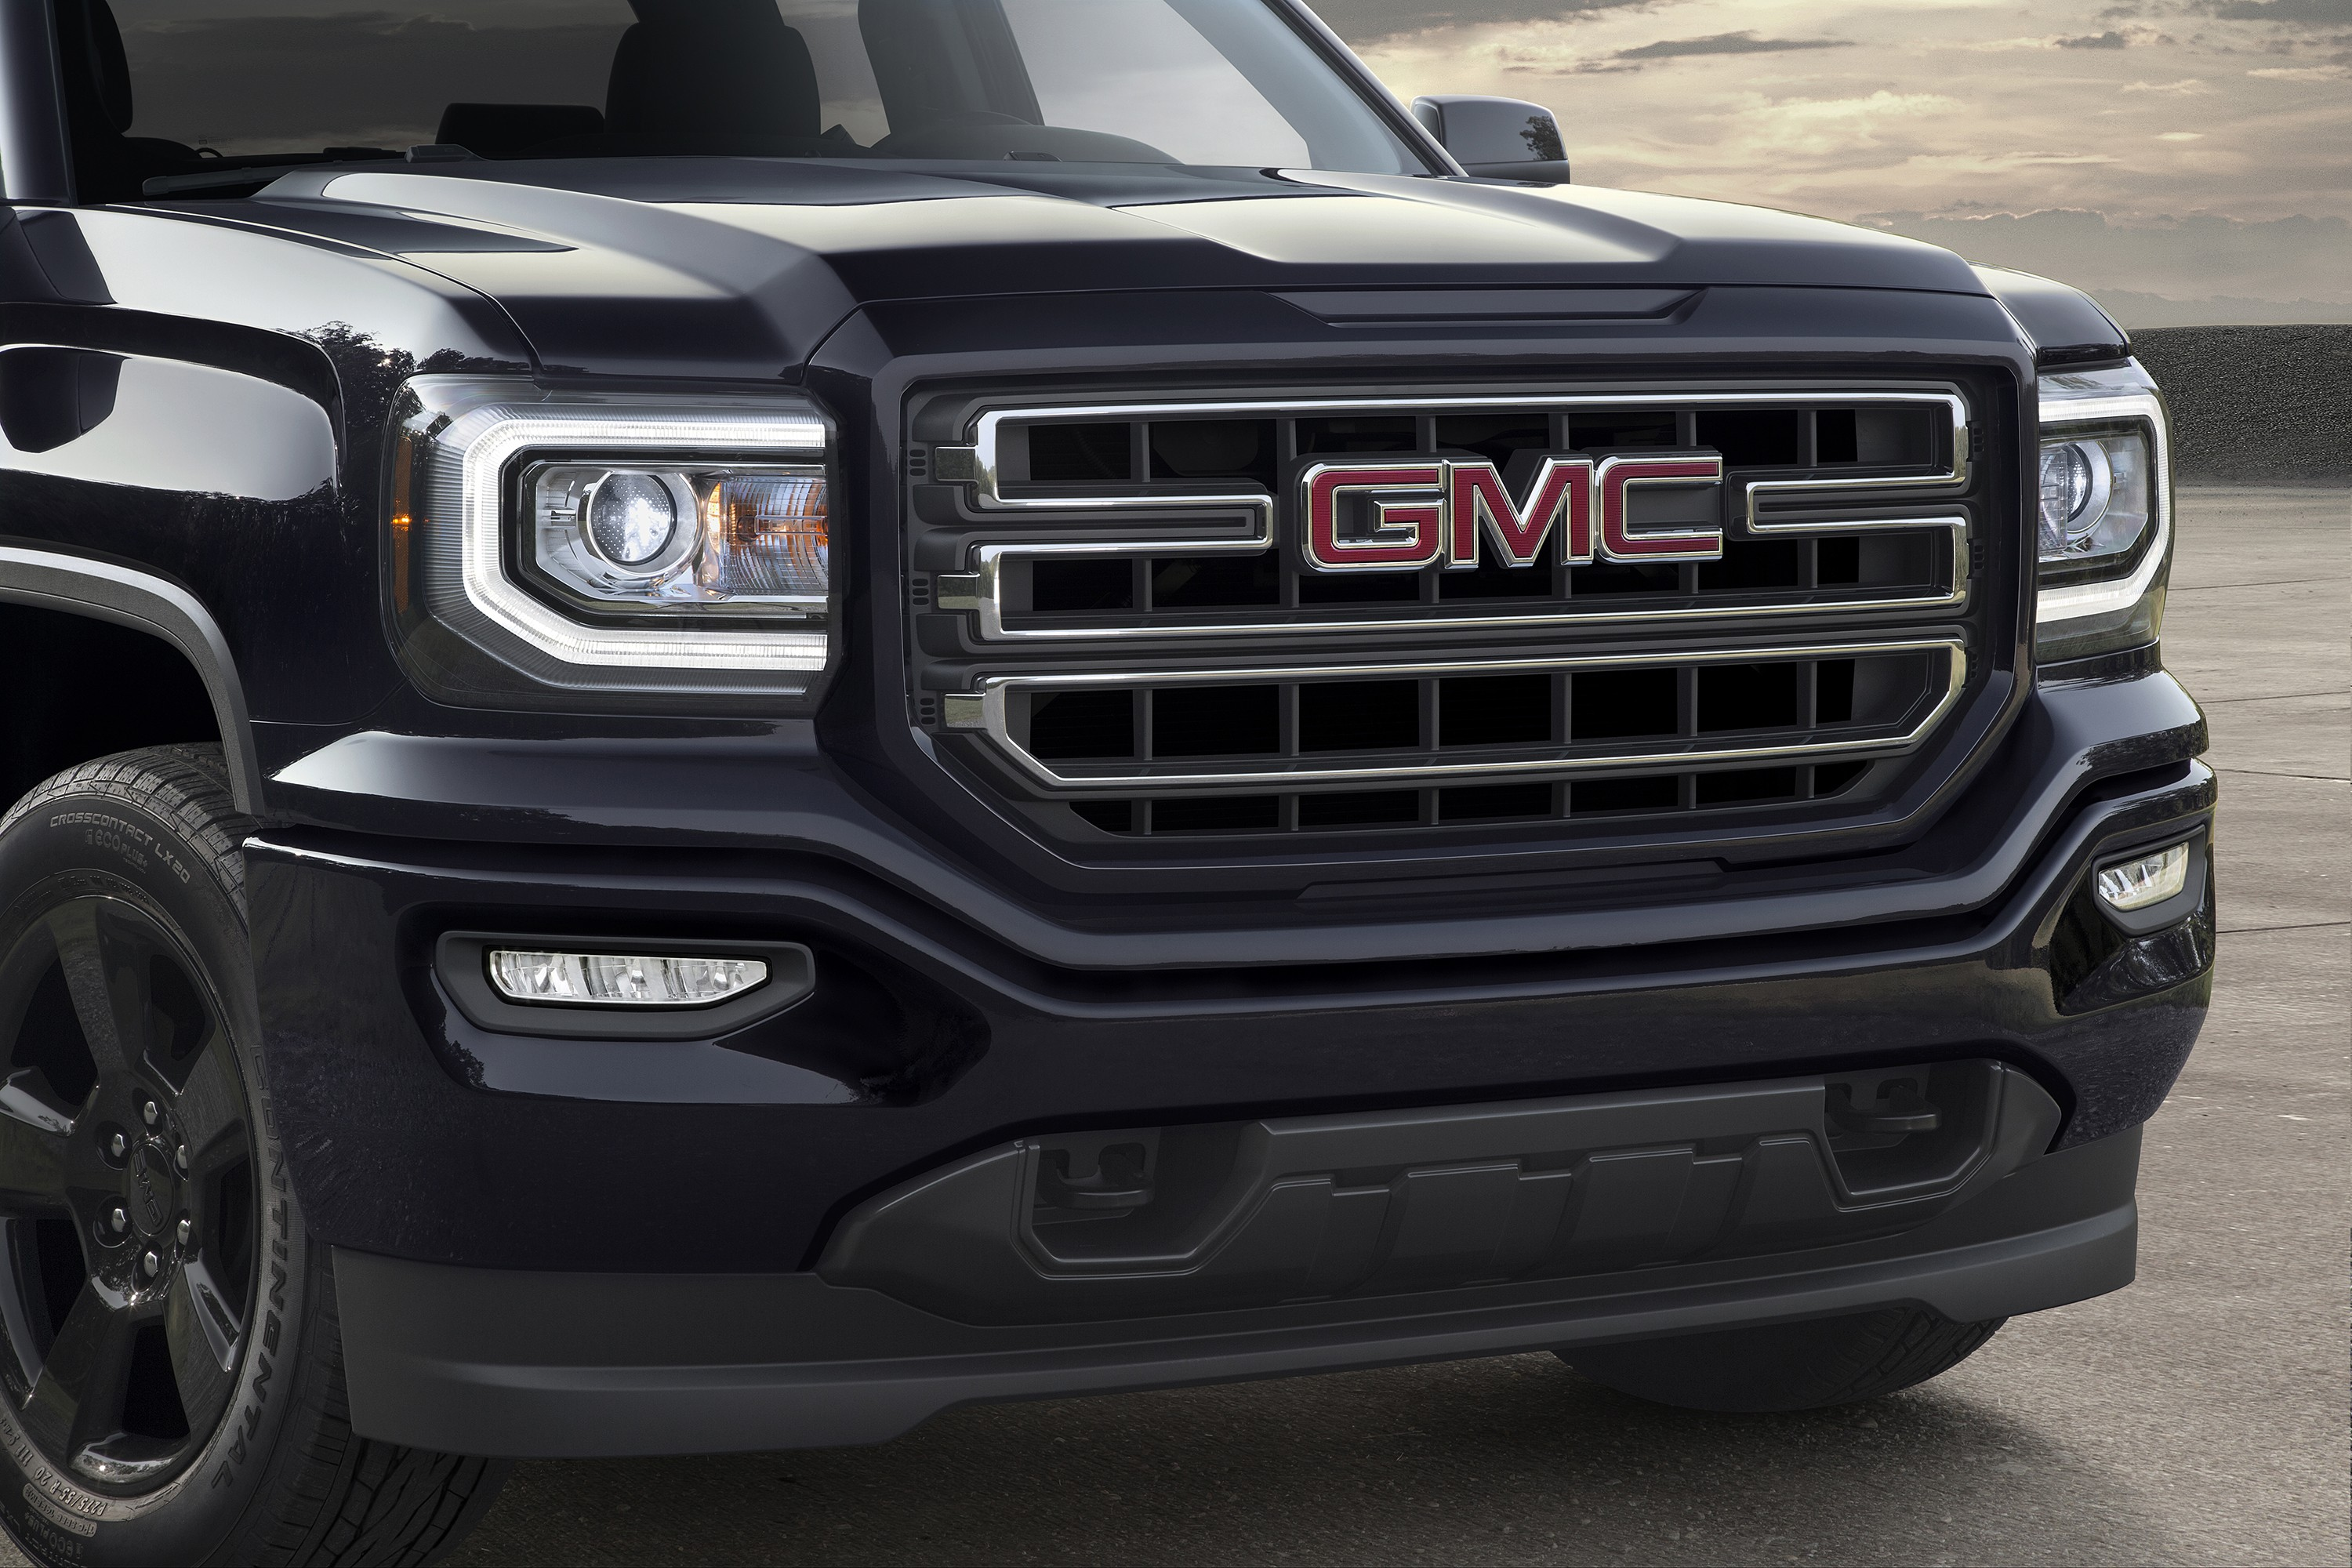 Gmc Elevation 2017 >> 2016 GMC Sierra Elevation Edition is an Appropriate Pickup Truck for a Sith Lord - autoevolution